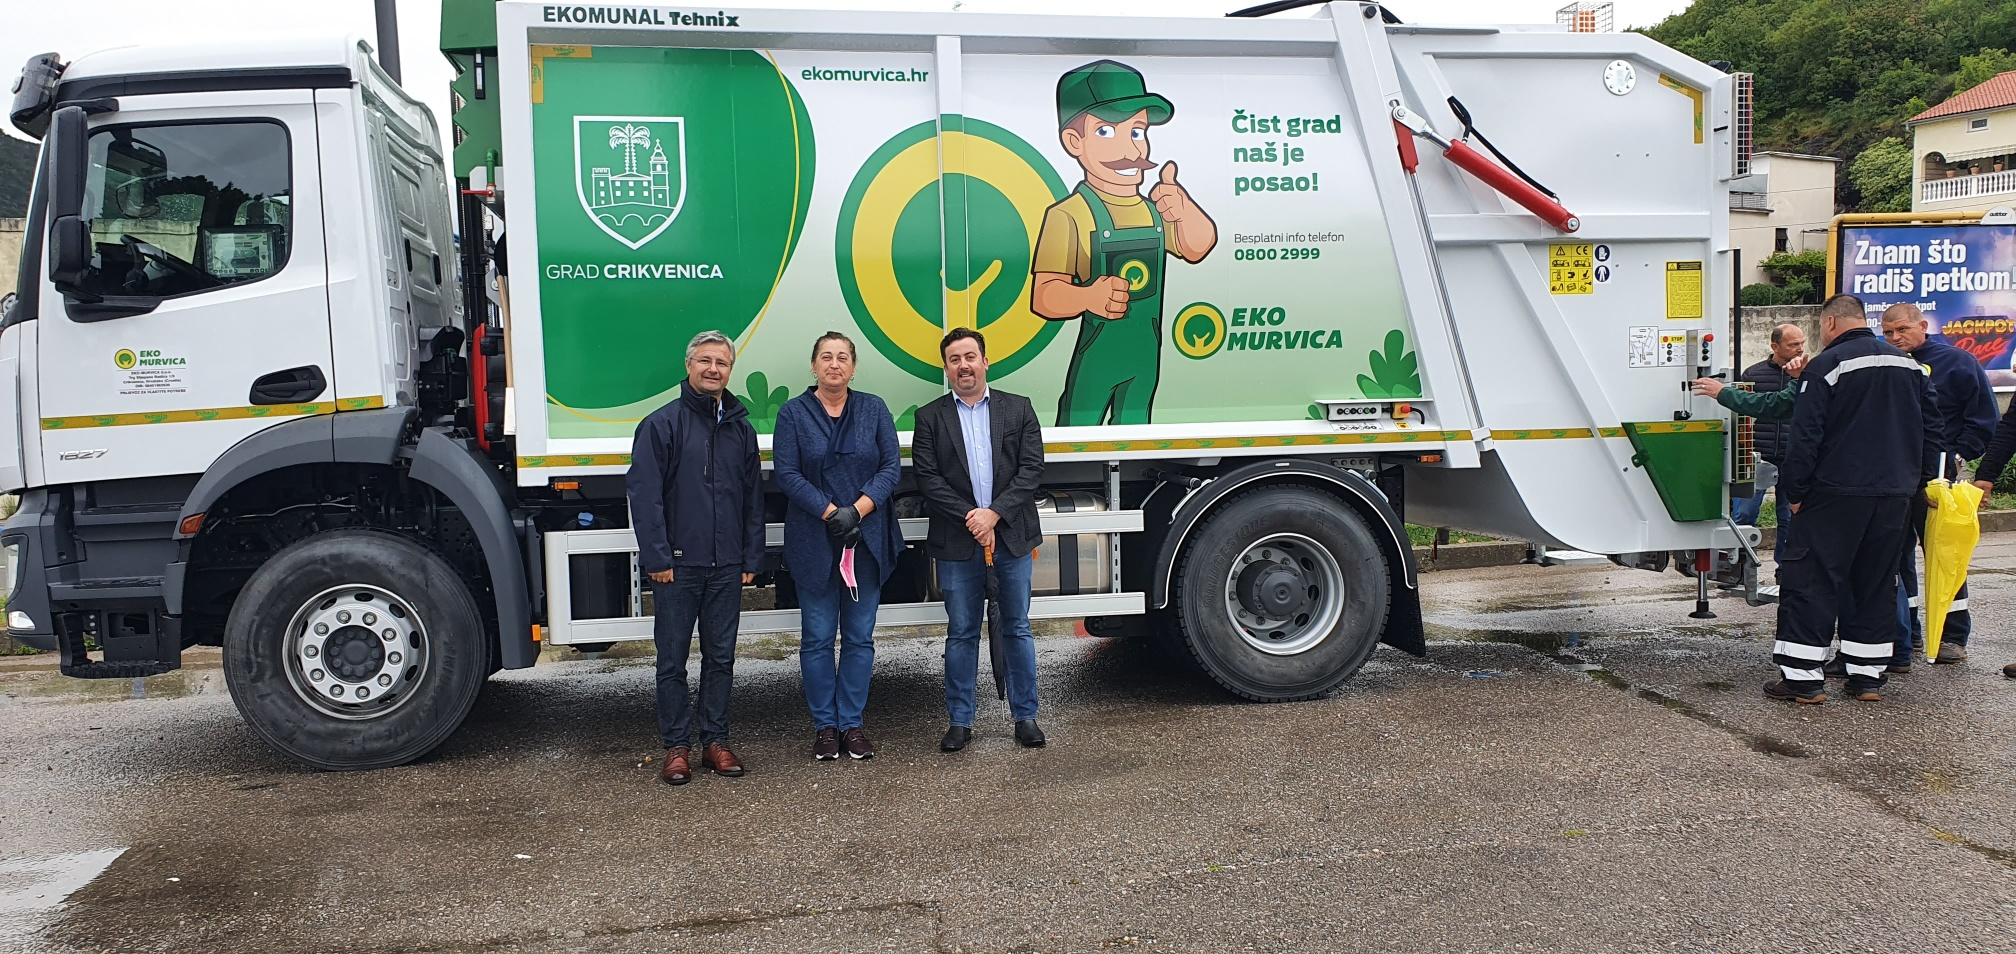 A Delivery of a Special Utility Vehicle to Eco Murvica d.o.o.